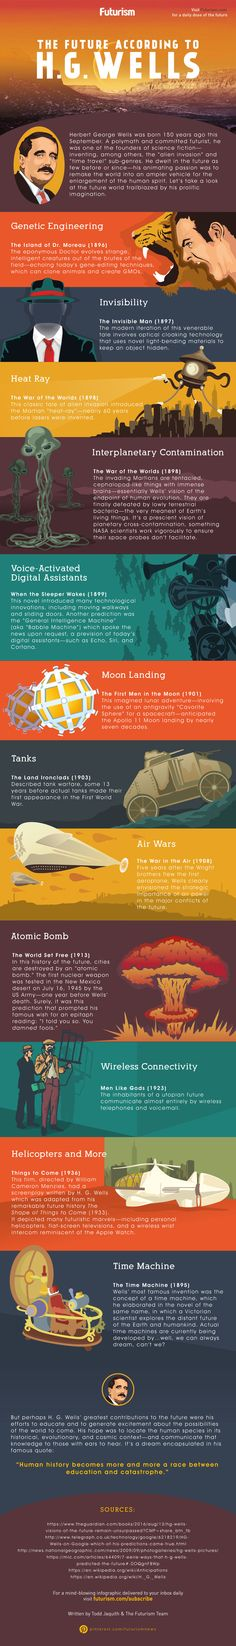 H. G. Wells dreamed of the future—we just happen to be living in it.  Check out some of his greatest predictions…  http://futurism.com/images/the-future-according-to-h-g-wells-infographic/?utm_campaign=coschedule&utm_source=pinterest&utm_medium=Futurism&utm_content=The%20Future%20According%20to%20H.%20G.%20Wells%20%5BINFOGRAPHIC%5D